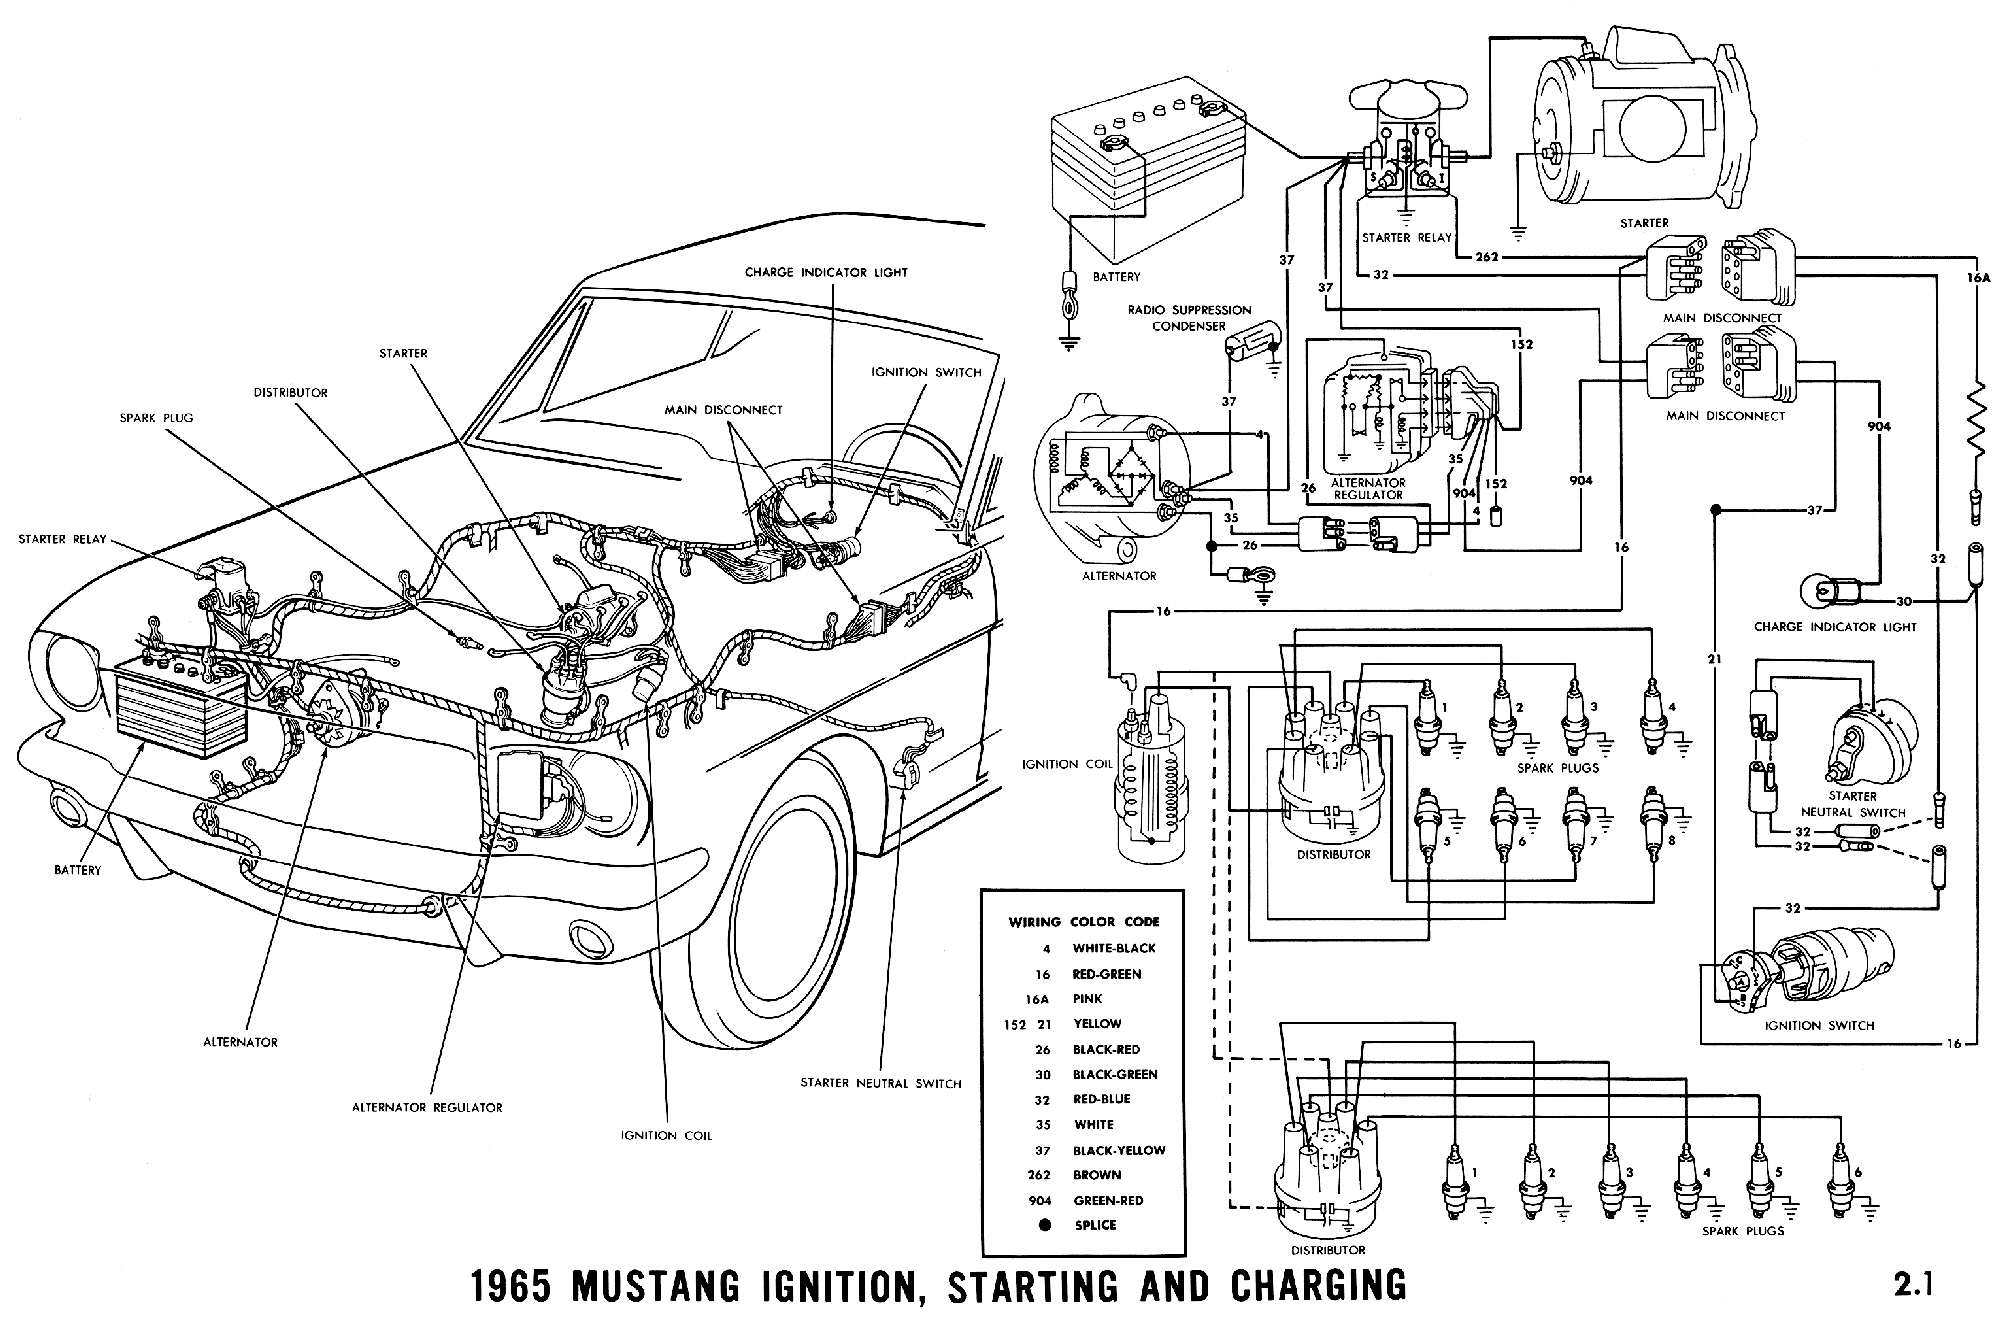 hight resolution of 1965 mustang wiring diagrams average joe restoration 2000 mustang dash wiring schematic 1965c 1965 mustang ignition